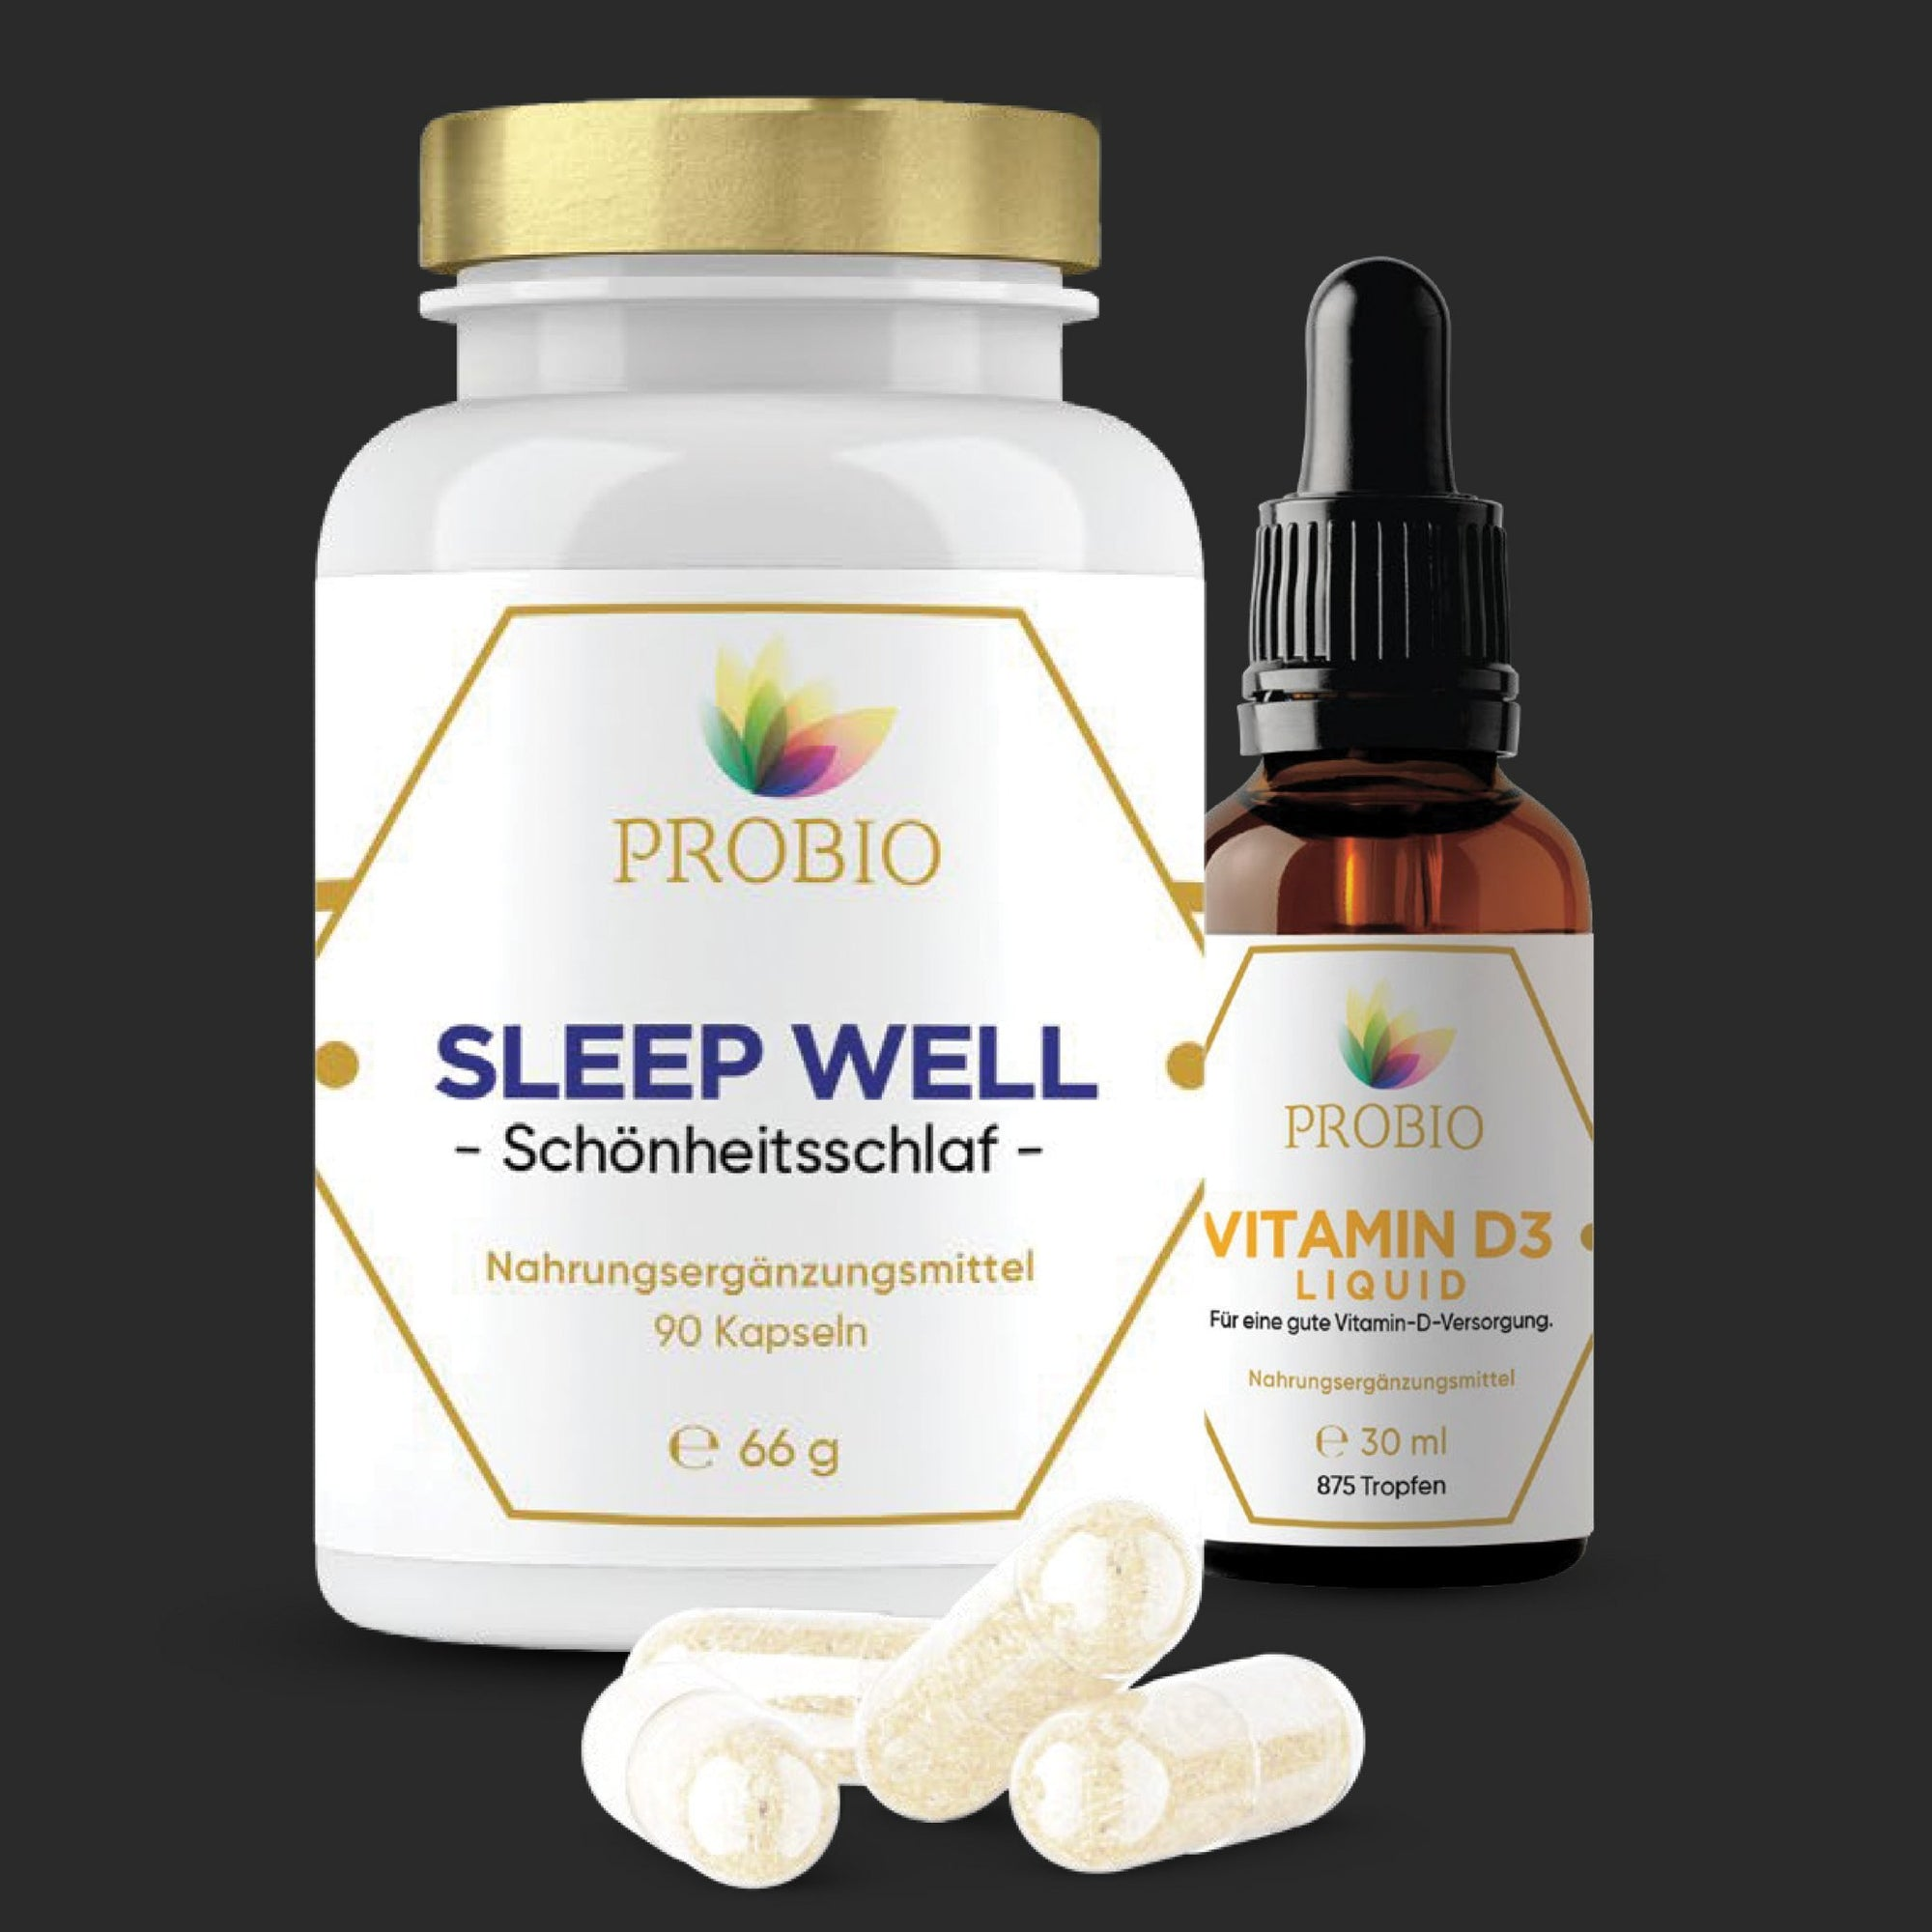 Dream Kit | Optimize Your Sleep Schedule | Melatonin Supplements